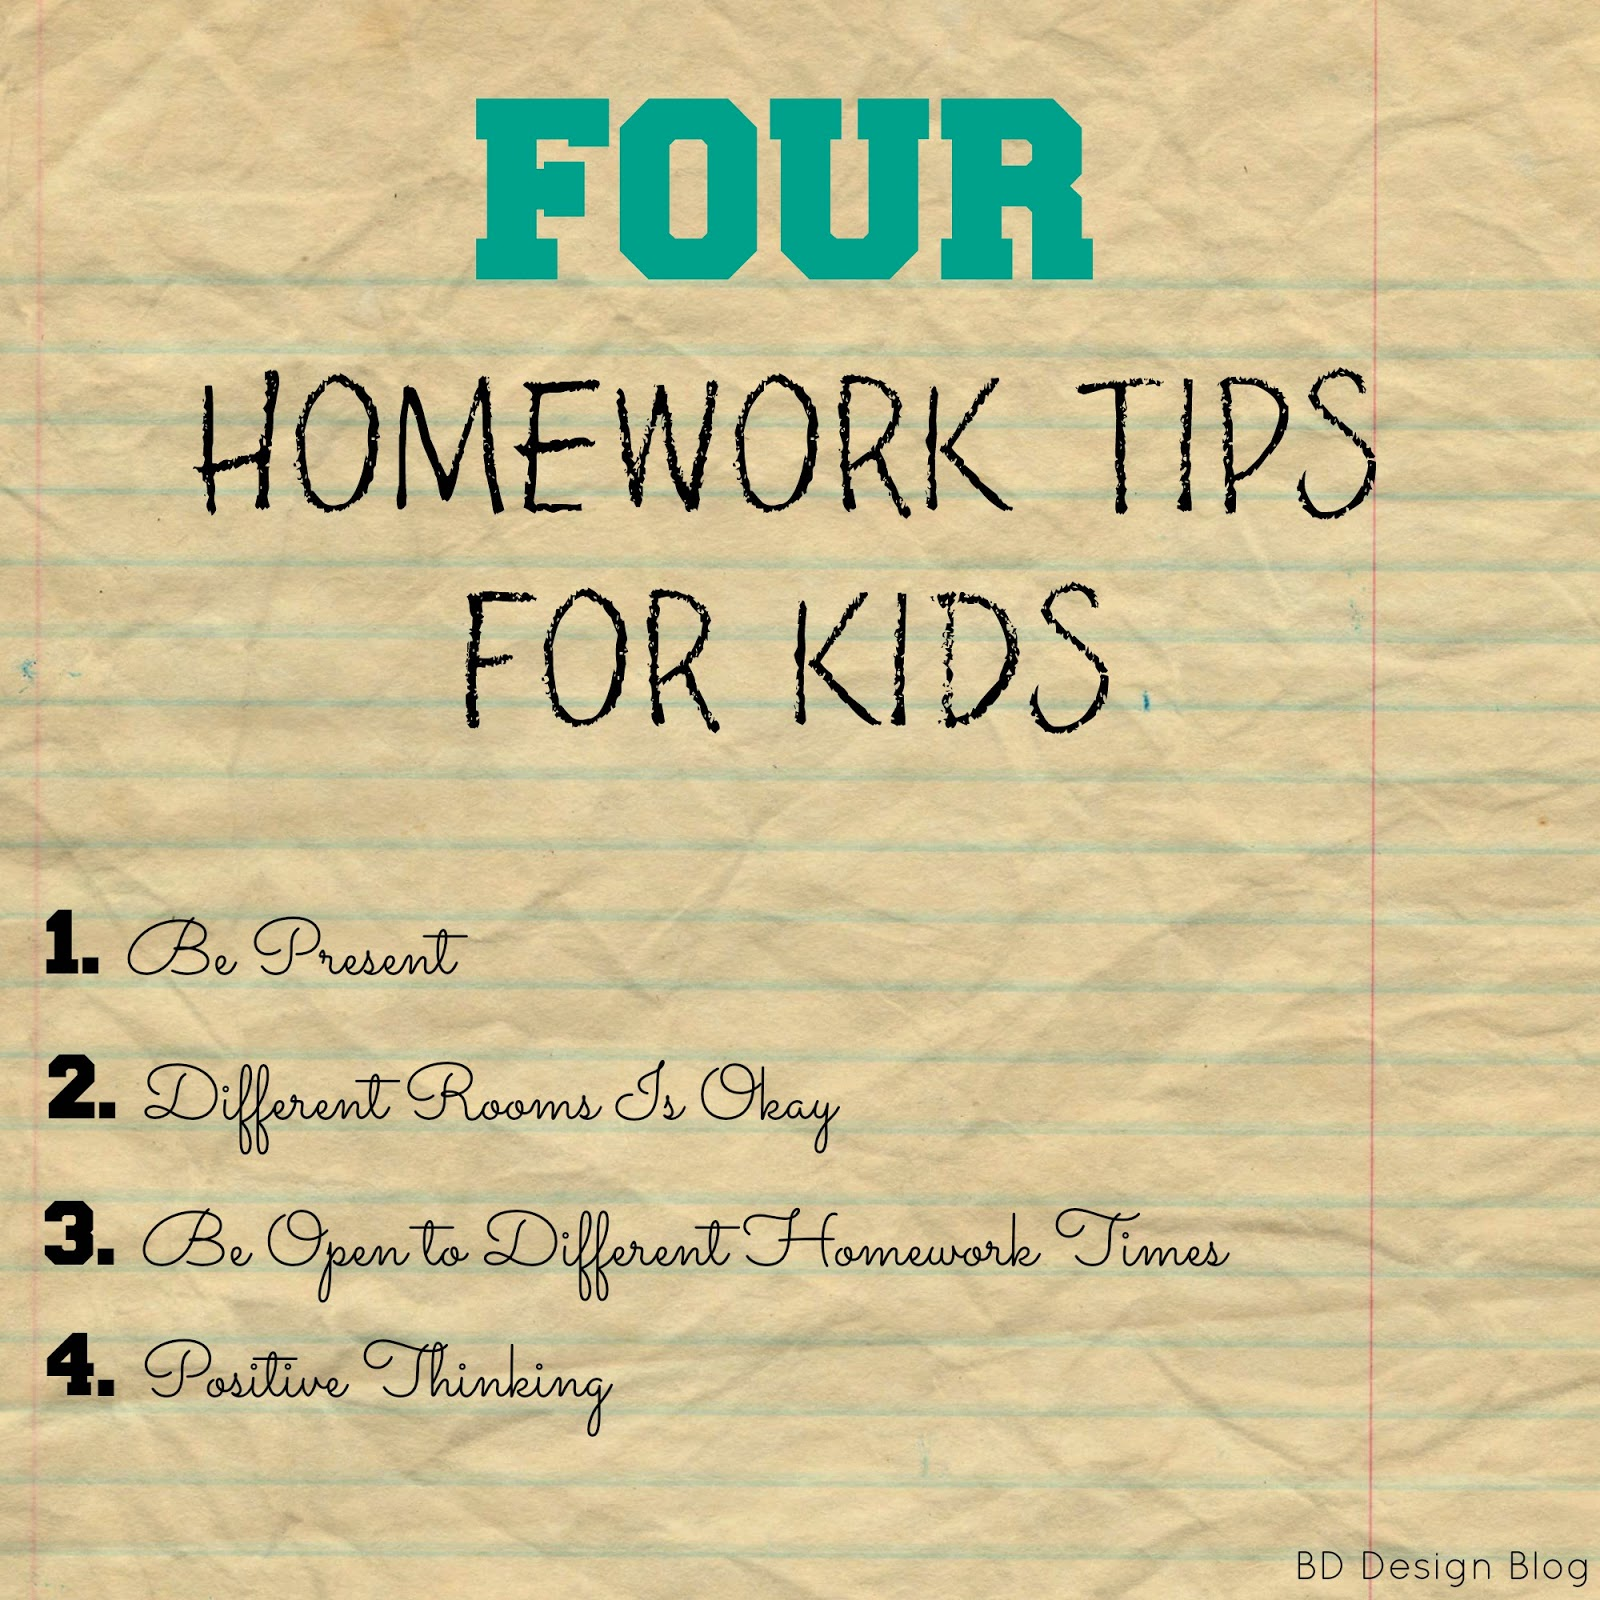 Is no homework better for elementary students? - KFBB.com News, Sports ...